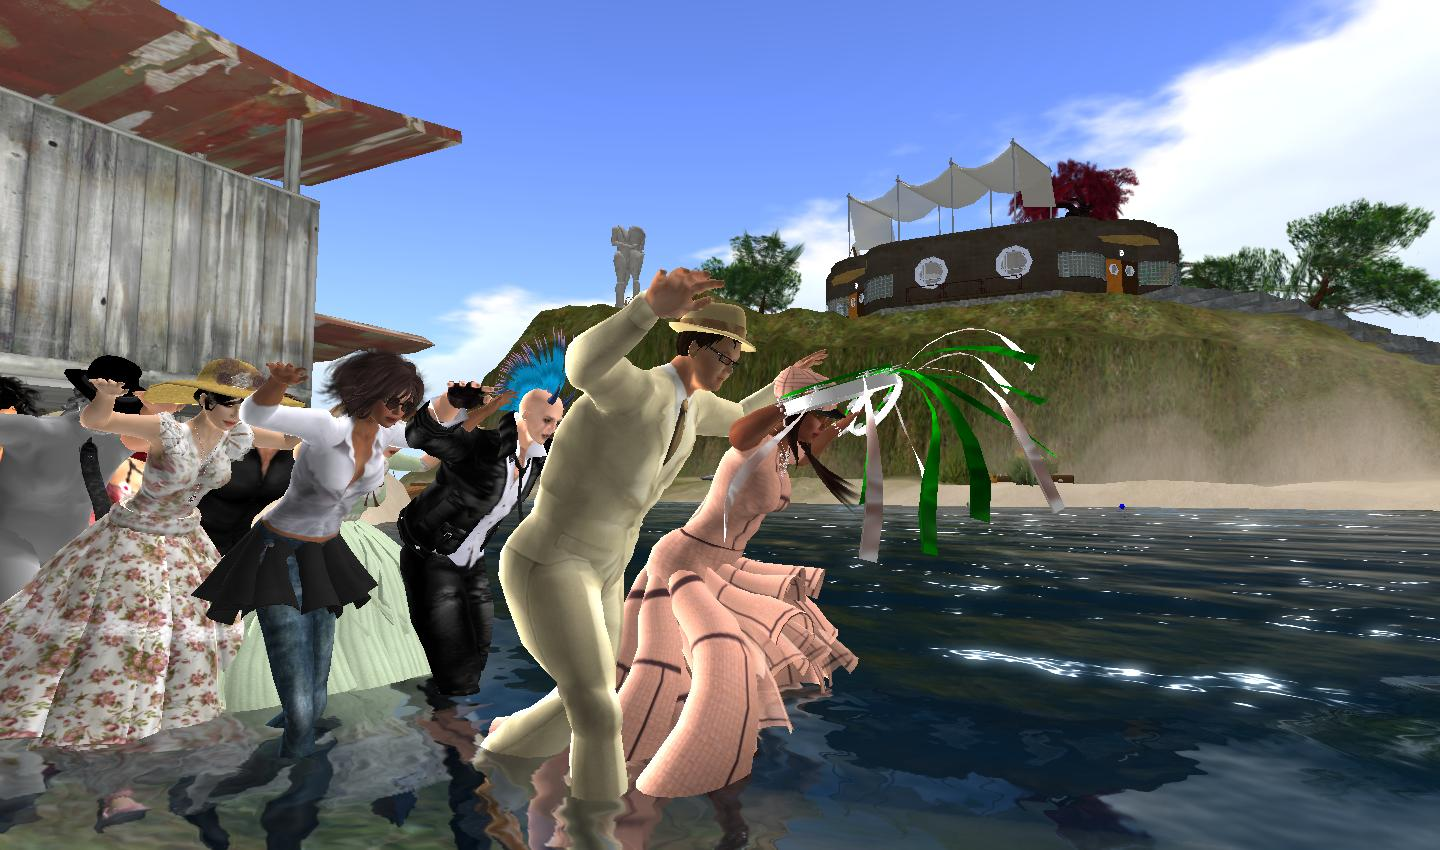 A Sunday in Second Life